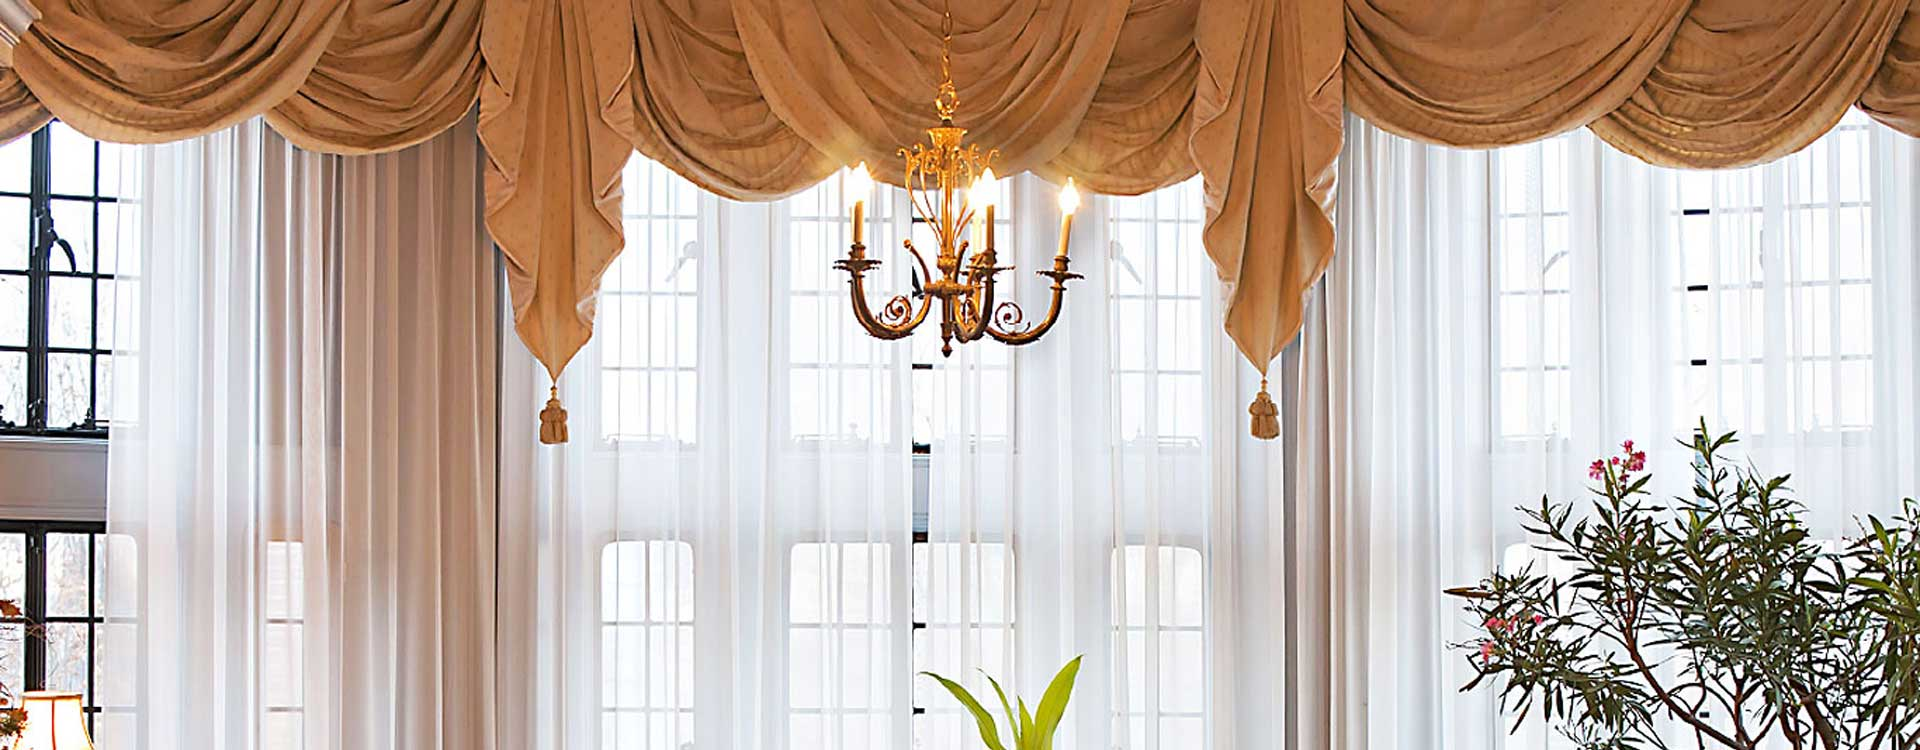 why regal drapes custom swag valances in less time and for less money often 20 60 less than other custom workrooms